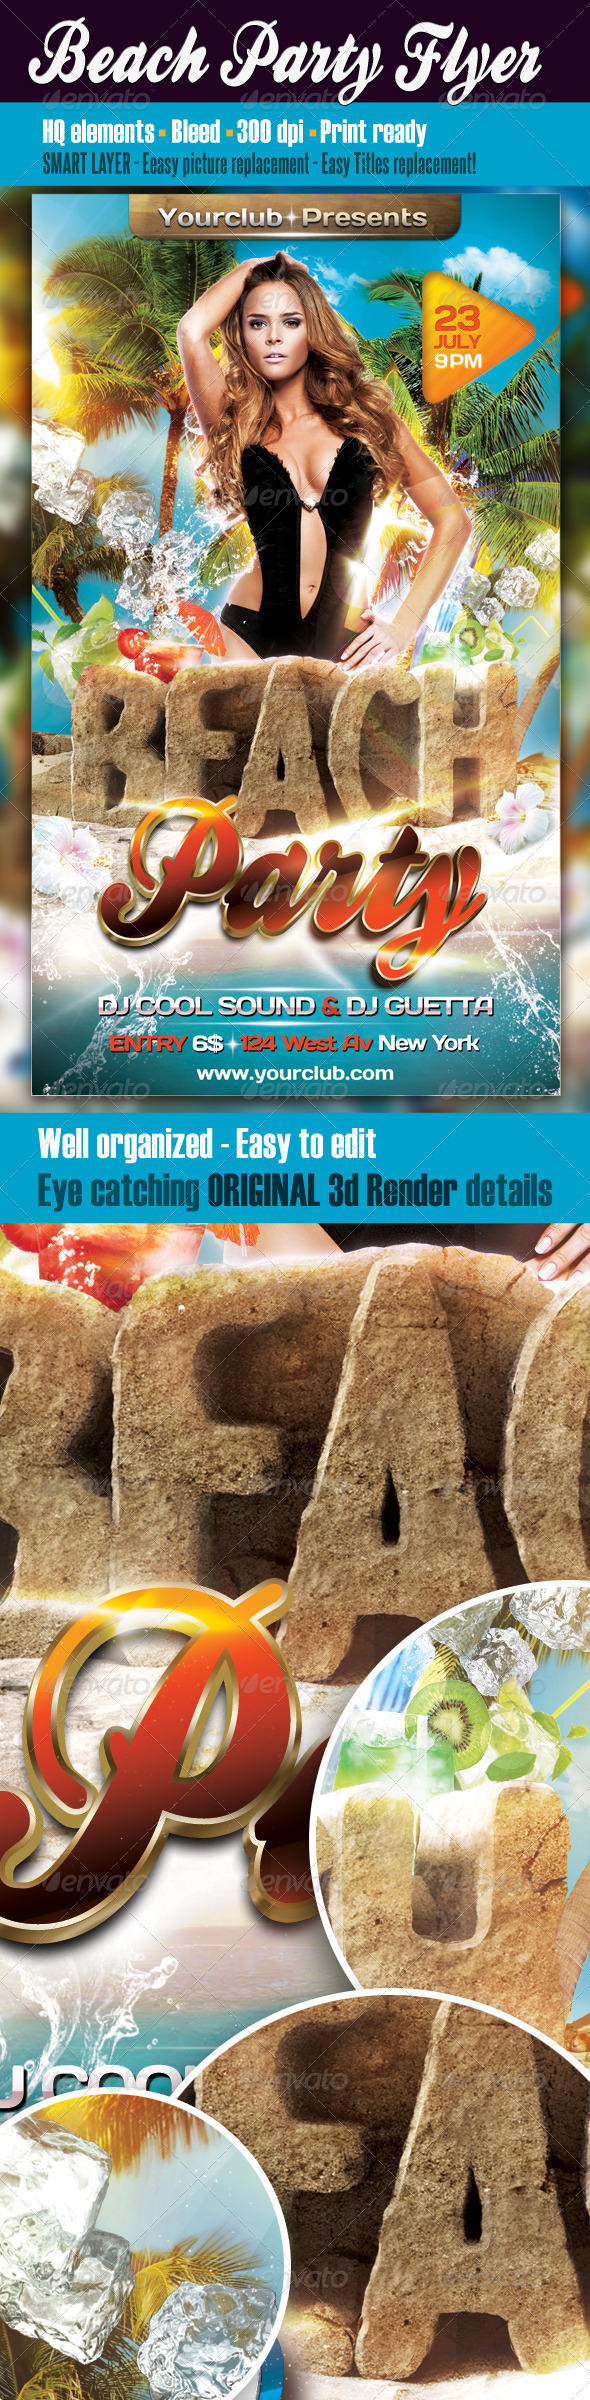 Flyers para Fiestas de Verano: Beach Party Flyer